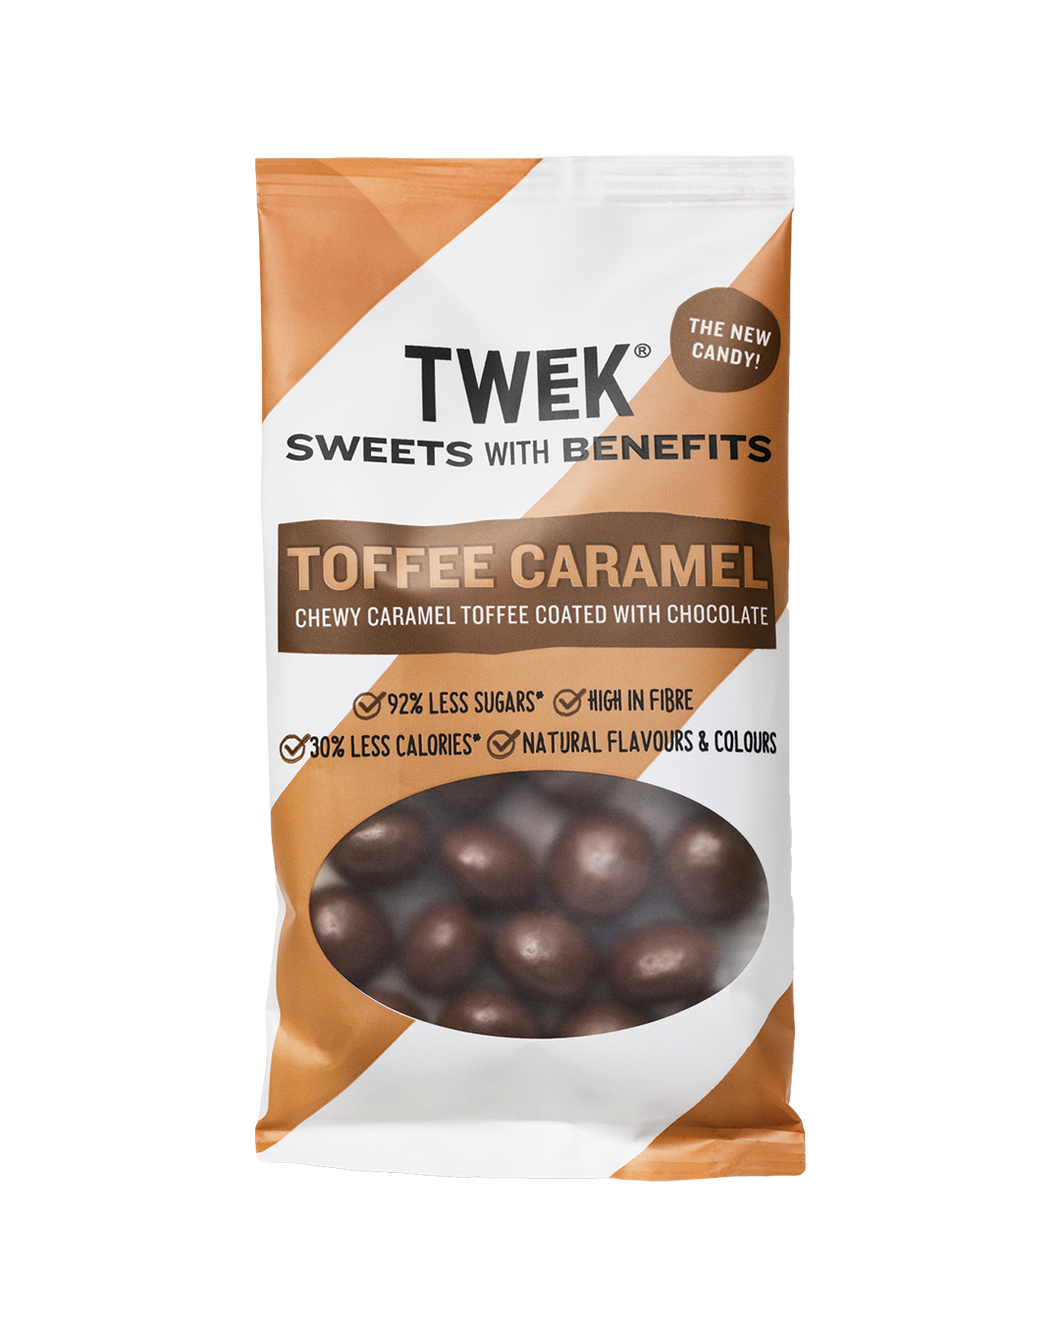 Tweek Candy Toffee Caramel